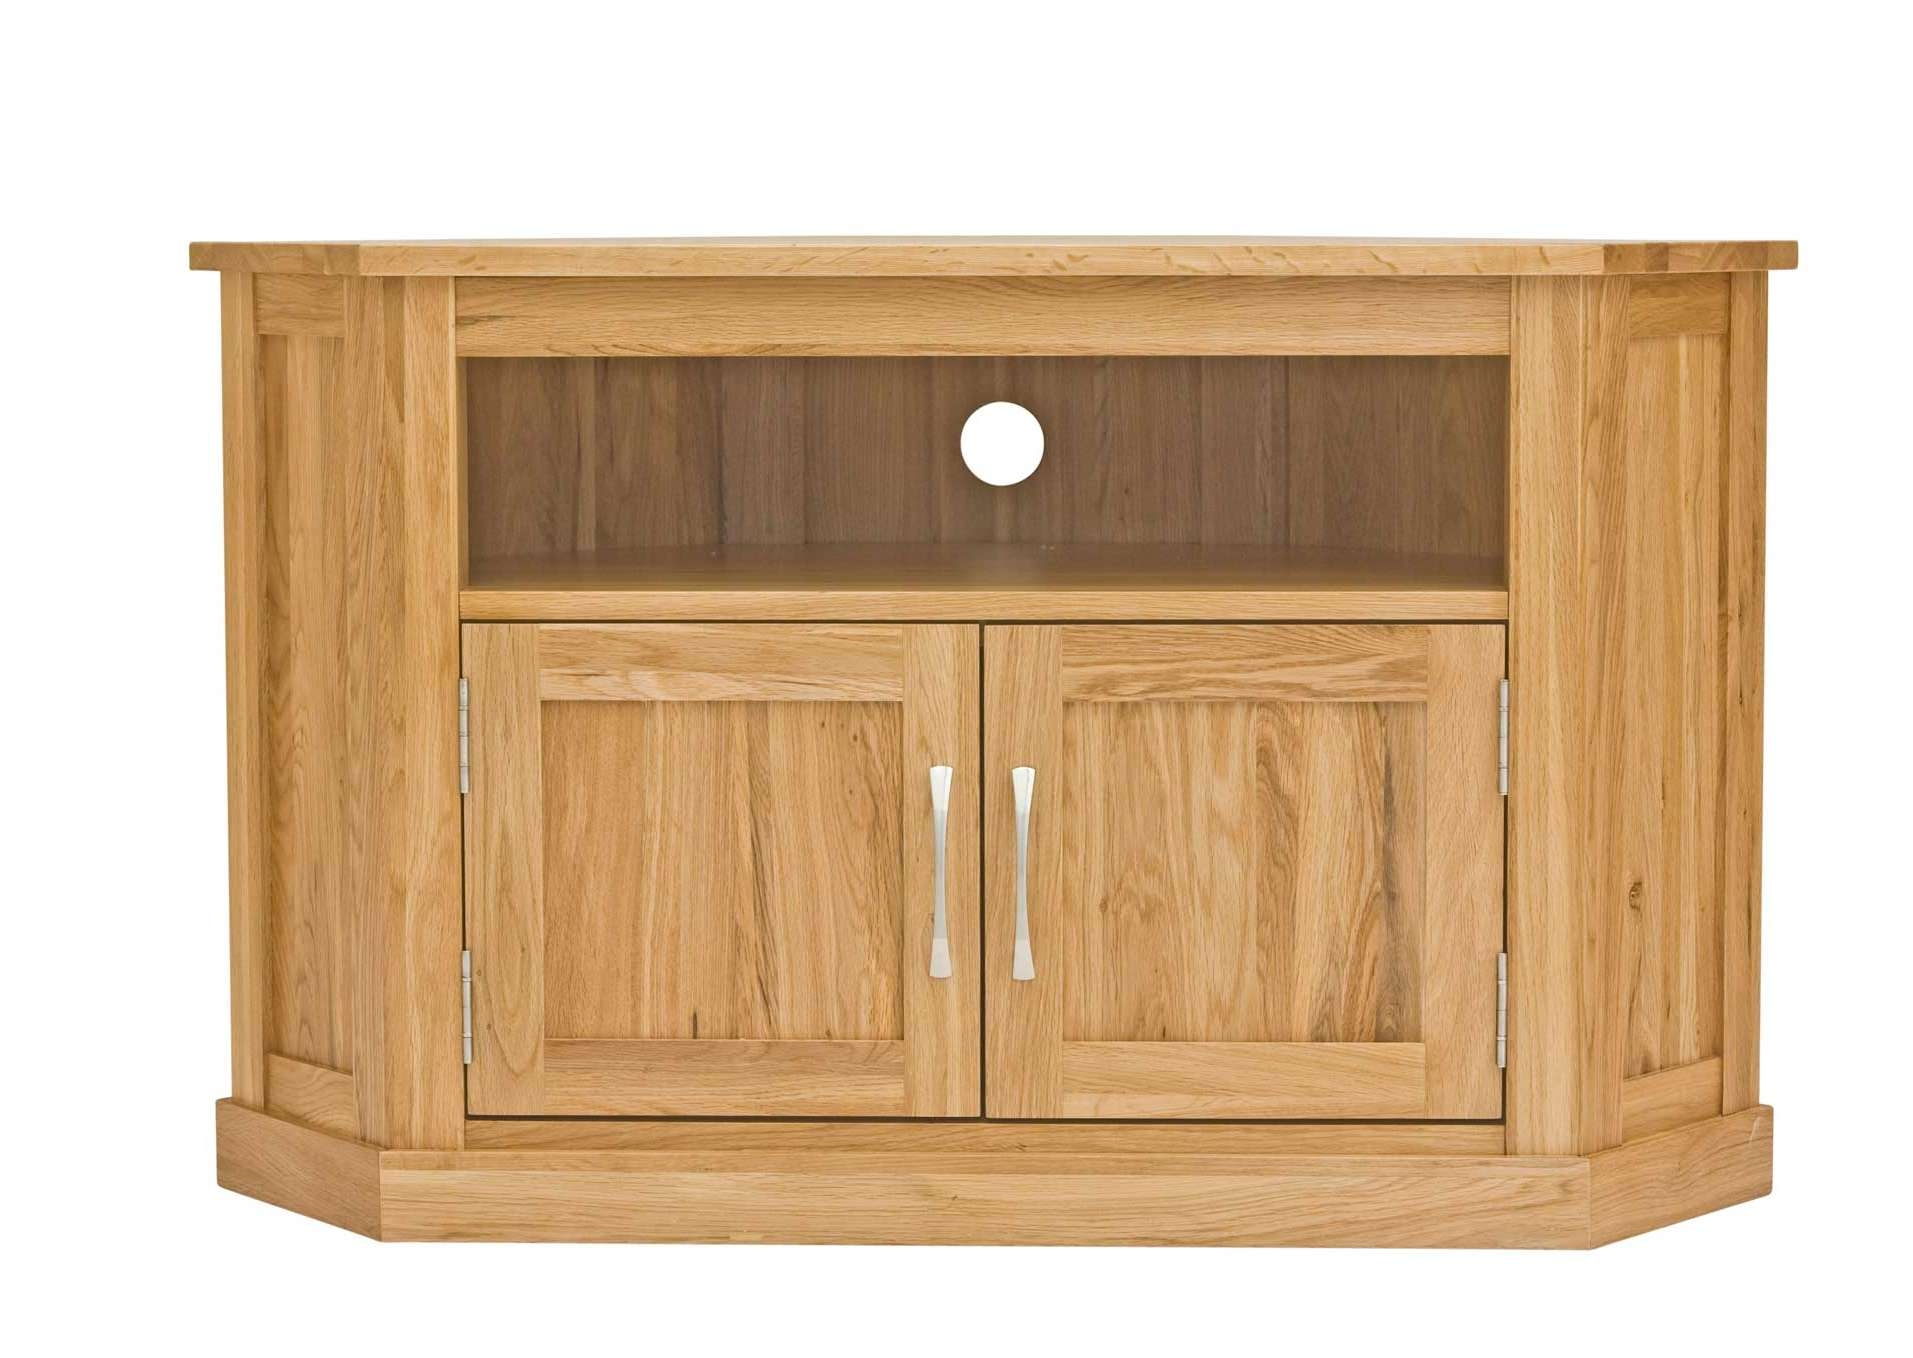 Classic Oak Corner Television Cabinet | Hampshire Furniture With Regard To Dark Wood Corner Tv Cabinets (View 11 of 20)